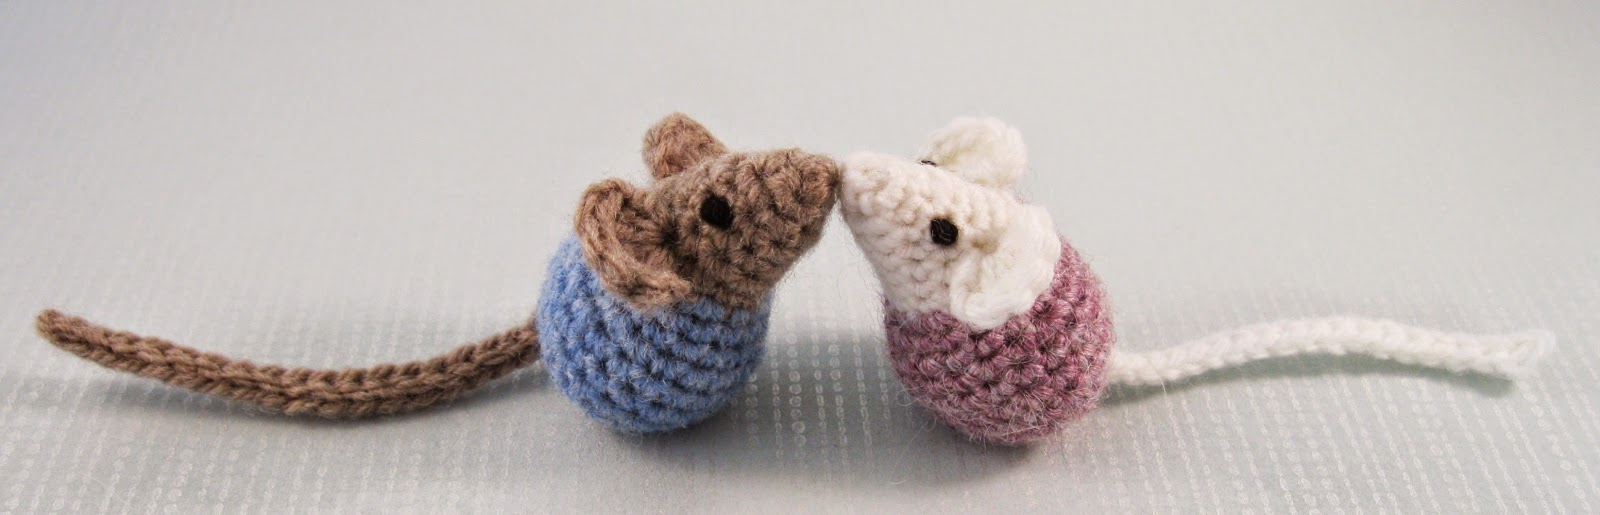 Tiny Mouse amigurumi pattern | Crochet mouse, Crochet patterns ... | 515x1600